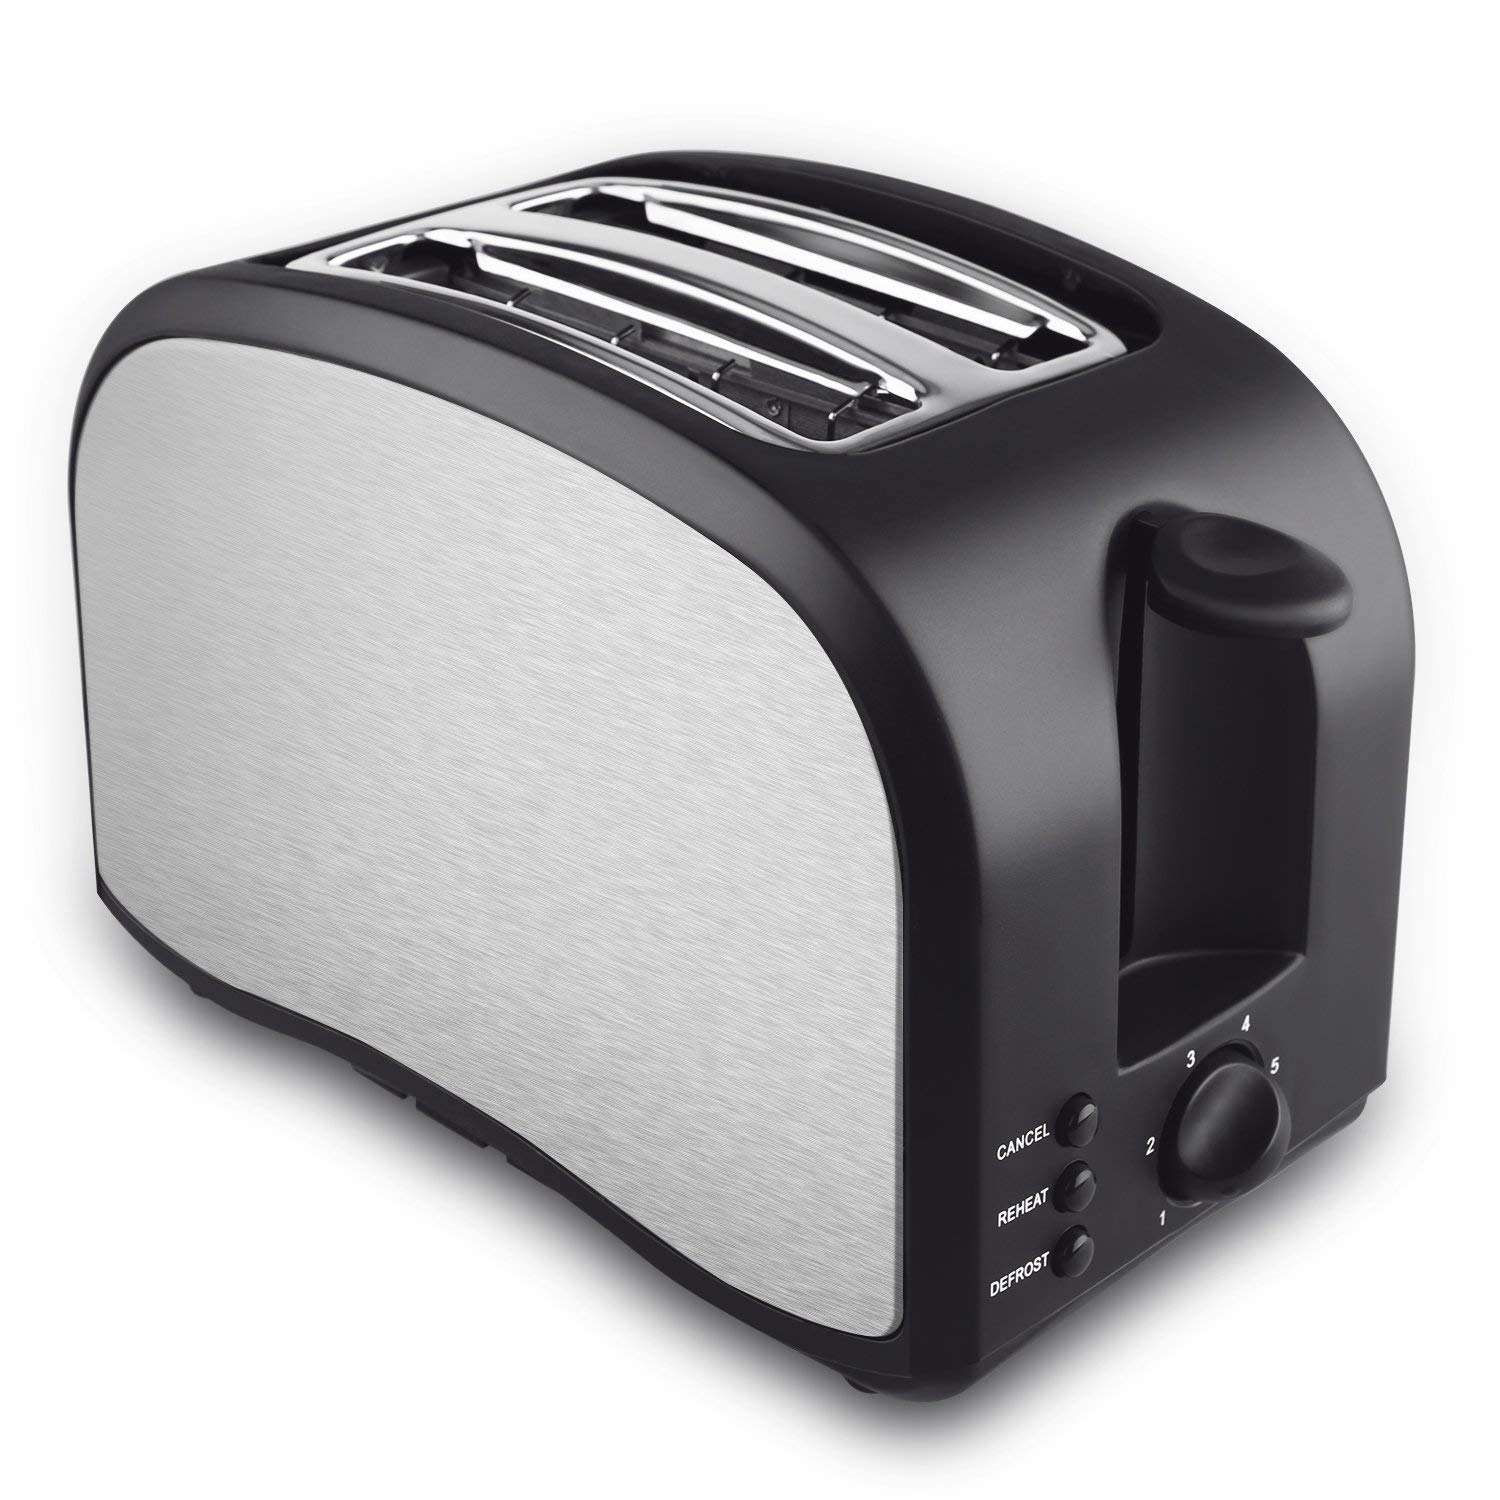 2 Slice Toaster, Cool Touch Toaster 2-Slice Self-Adjusting Toasting Slots, Compact Toasters with Defrost/Reheat/Cancel Function Extra Removable Crumb Tray, One Touch Quickly Toasts- Brush Stainless Steel (2 Slice Silver)